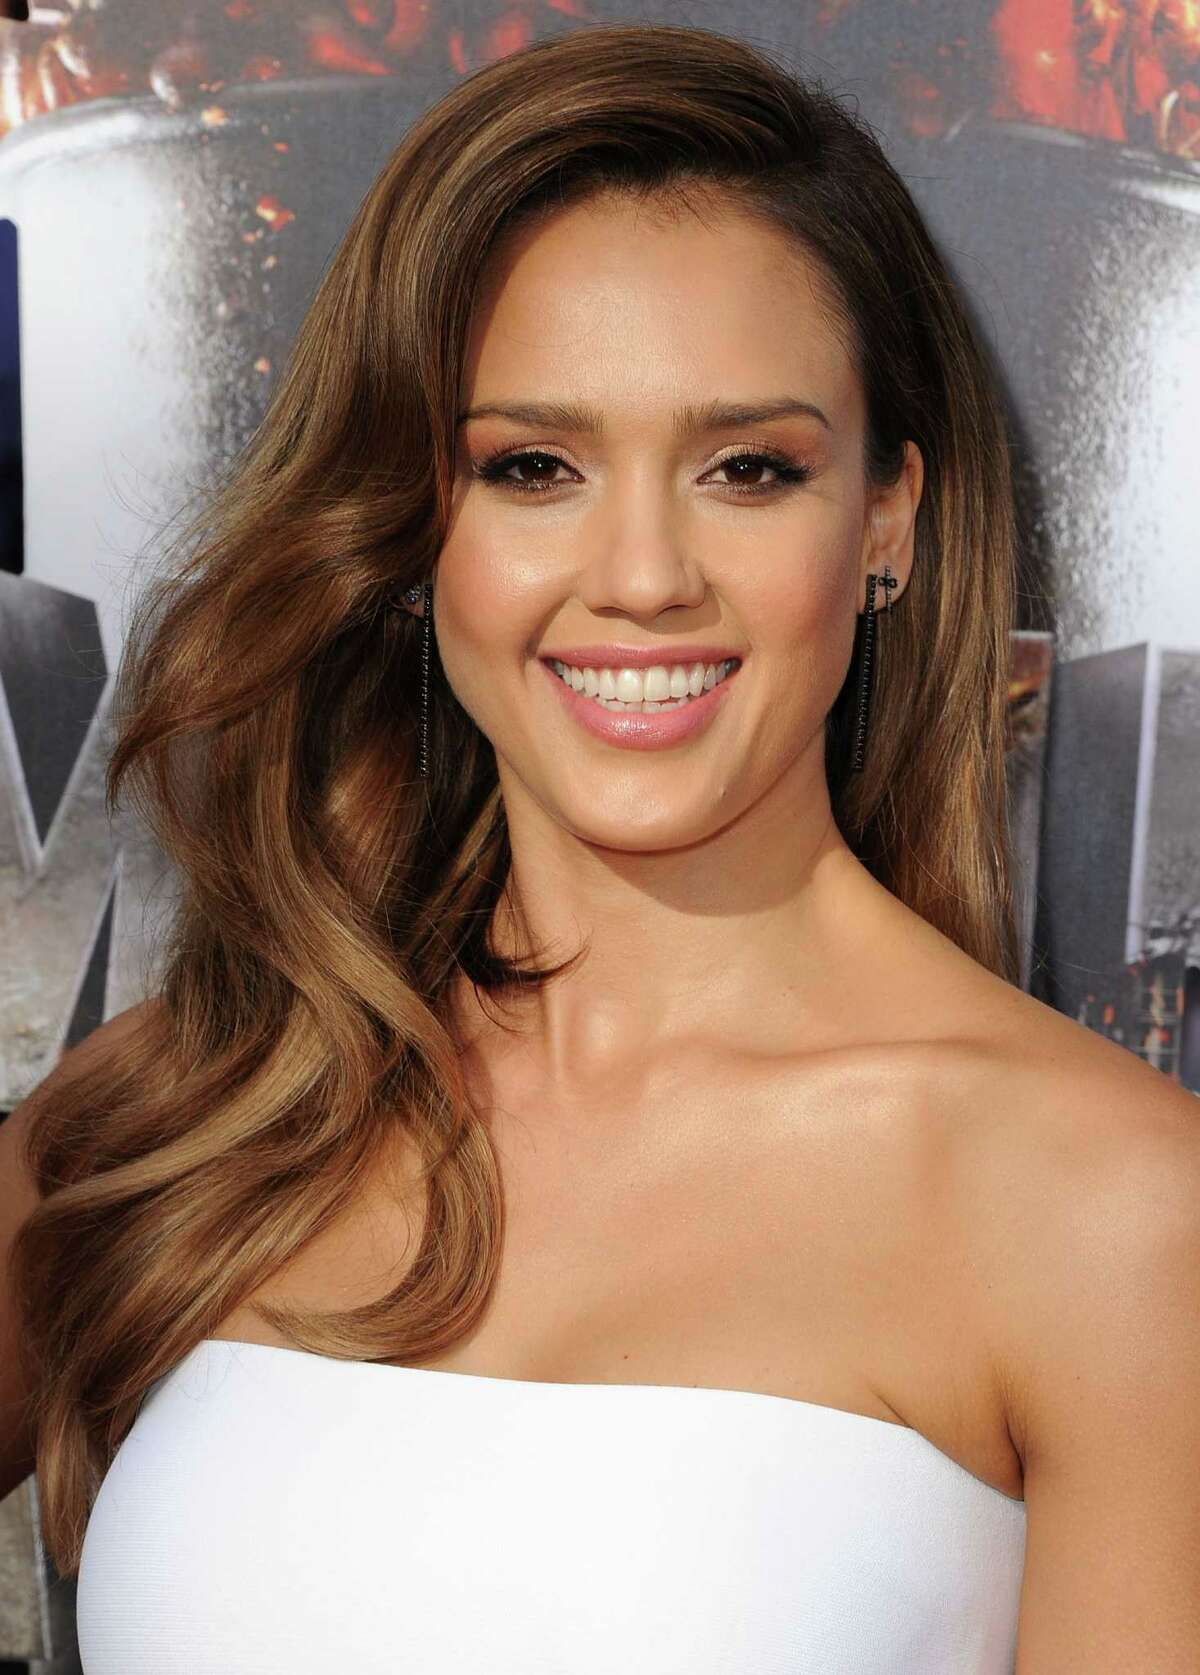 """Jessica Alba Voluminous curls starting at the chin complement Jessica's oval face shape and strapless top. """"For big waves, use either heated Velcro rollers or a large-barrel curling iron,"""" instructs Hill. """"Rollers will give more volume, so they work well on finer hair. Curling irons are better for thicker hair as they help smooth each section. Whatever method you choose, remember that the bigger the section, the looser the wave will be."""" Read: 4 sunglasses shapes that never go out of style"""